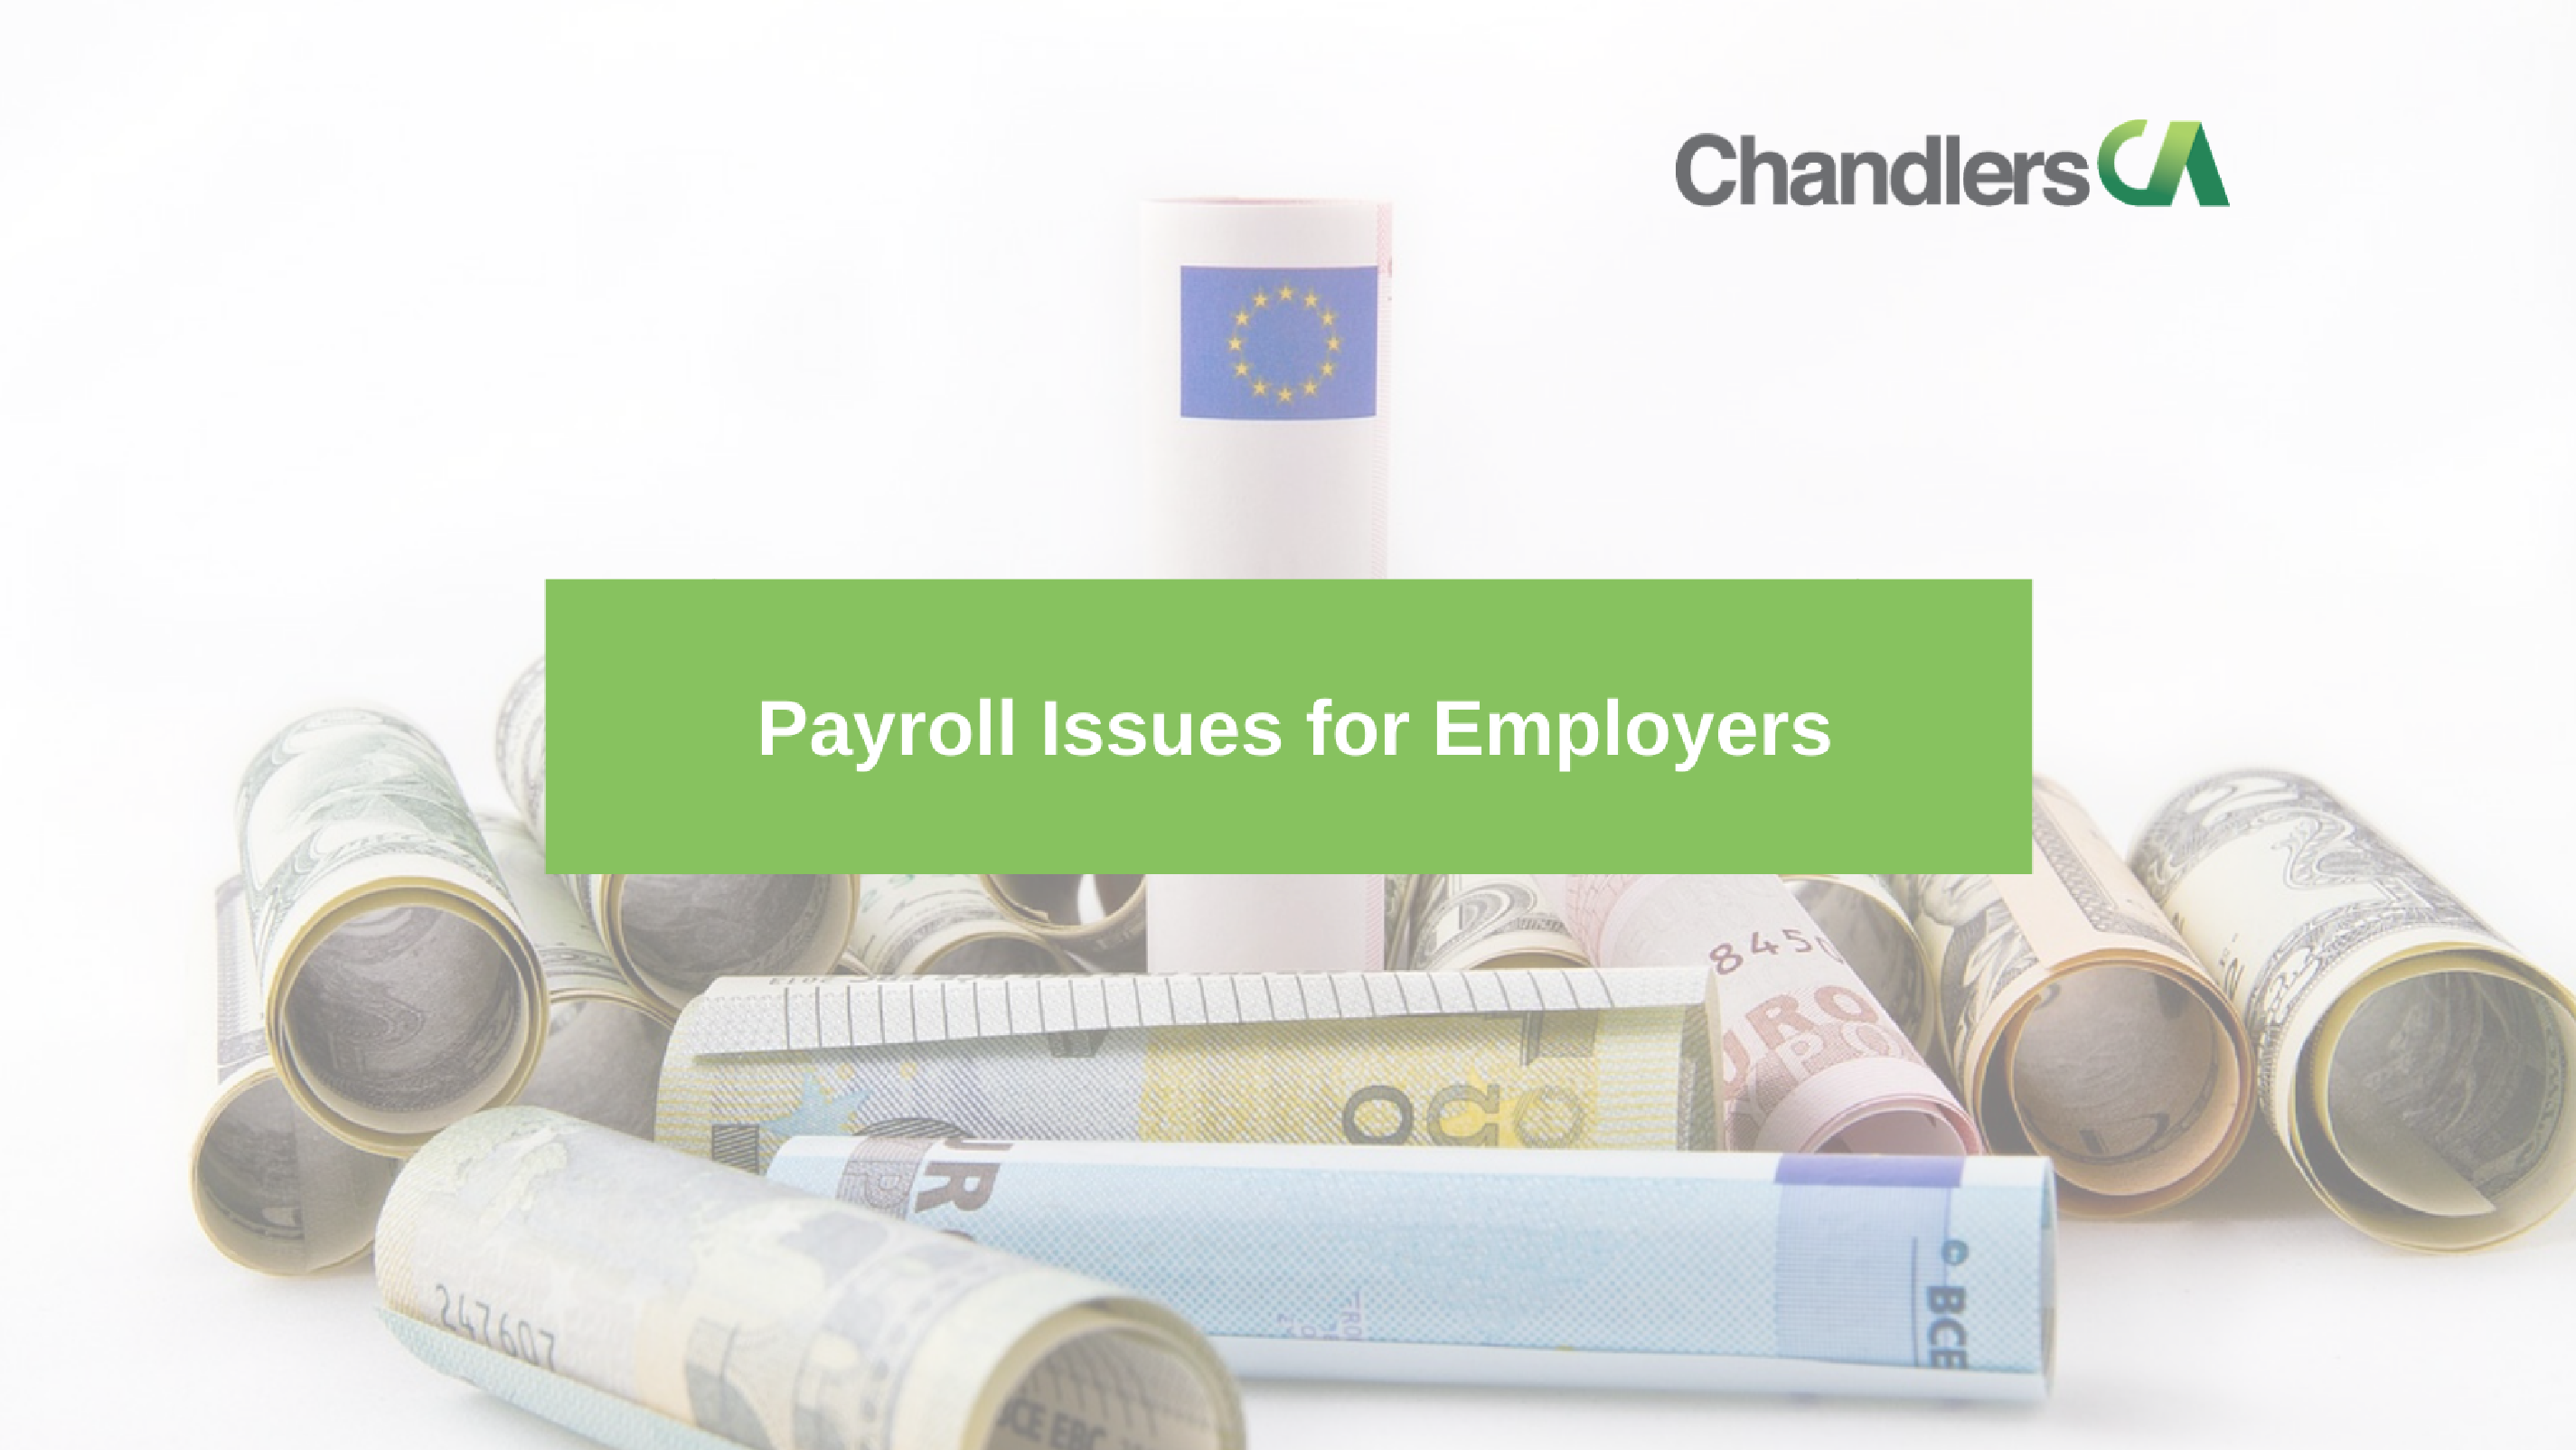 Guide to payroll issues for employers in the UK